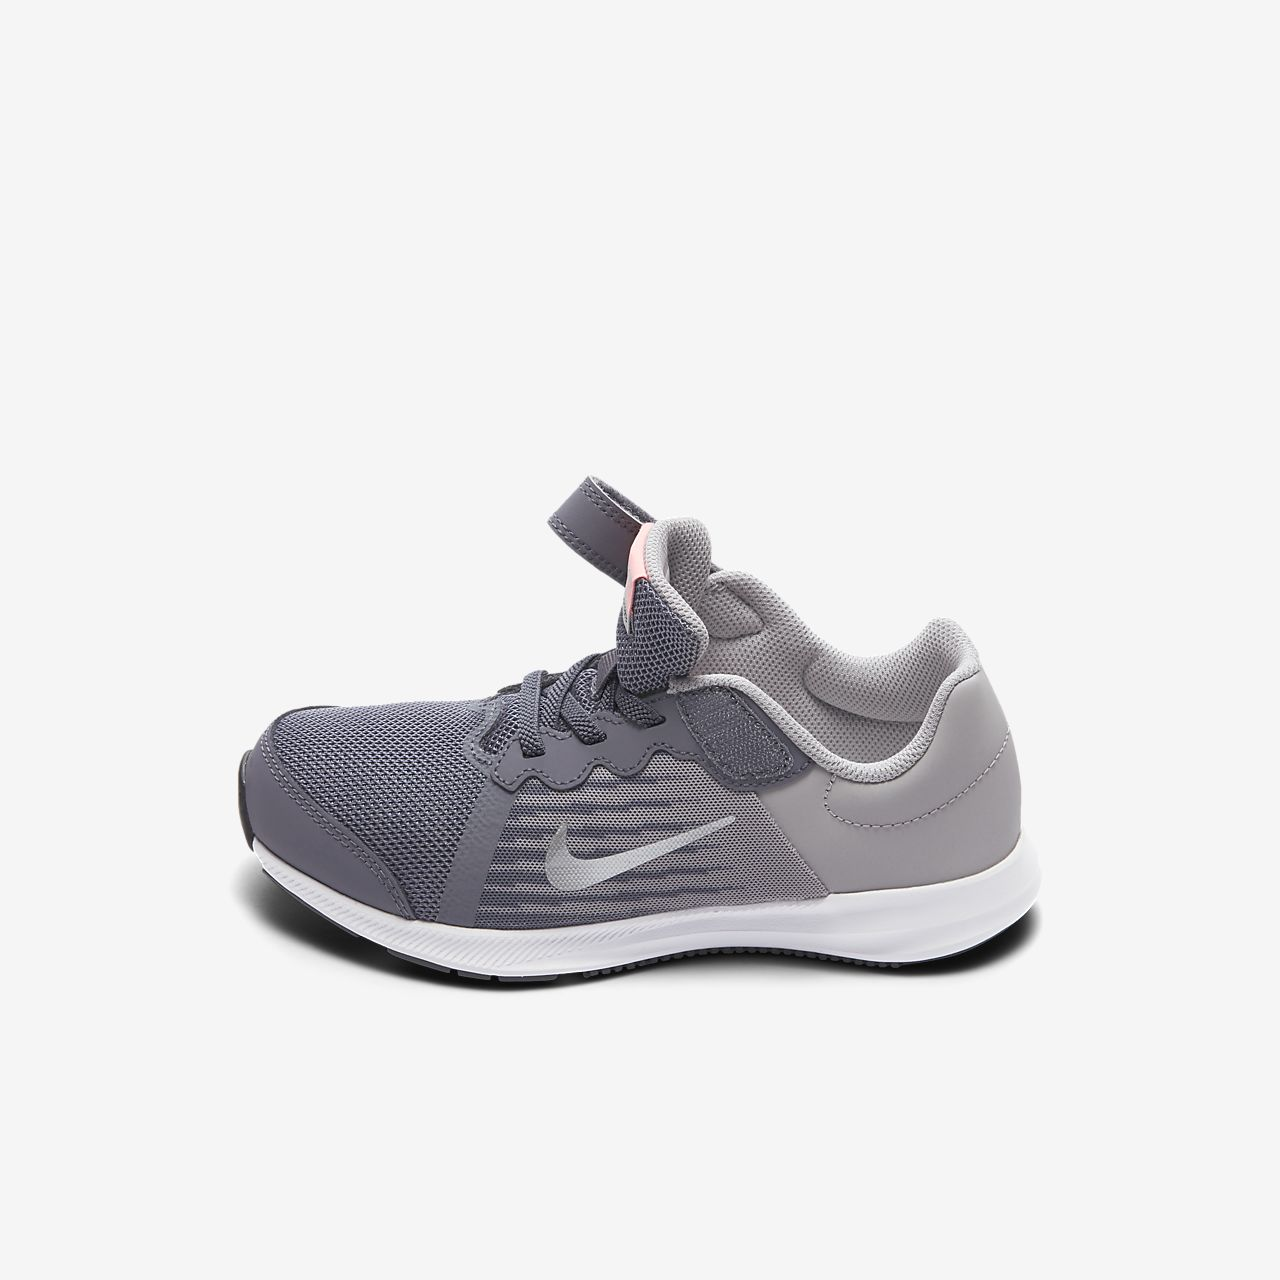 Nike Chaussures Downshifter 8